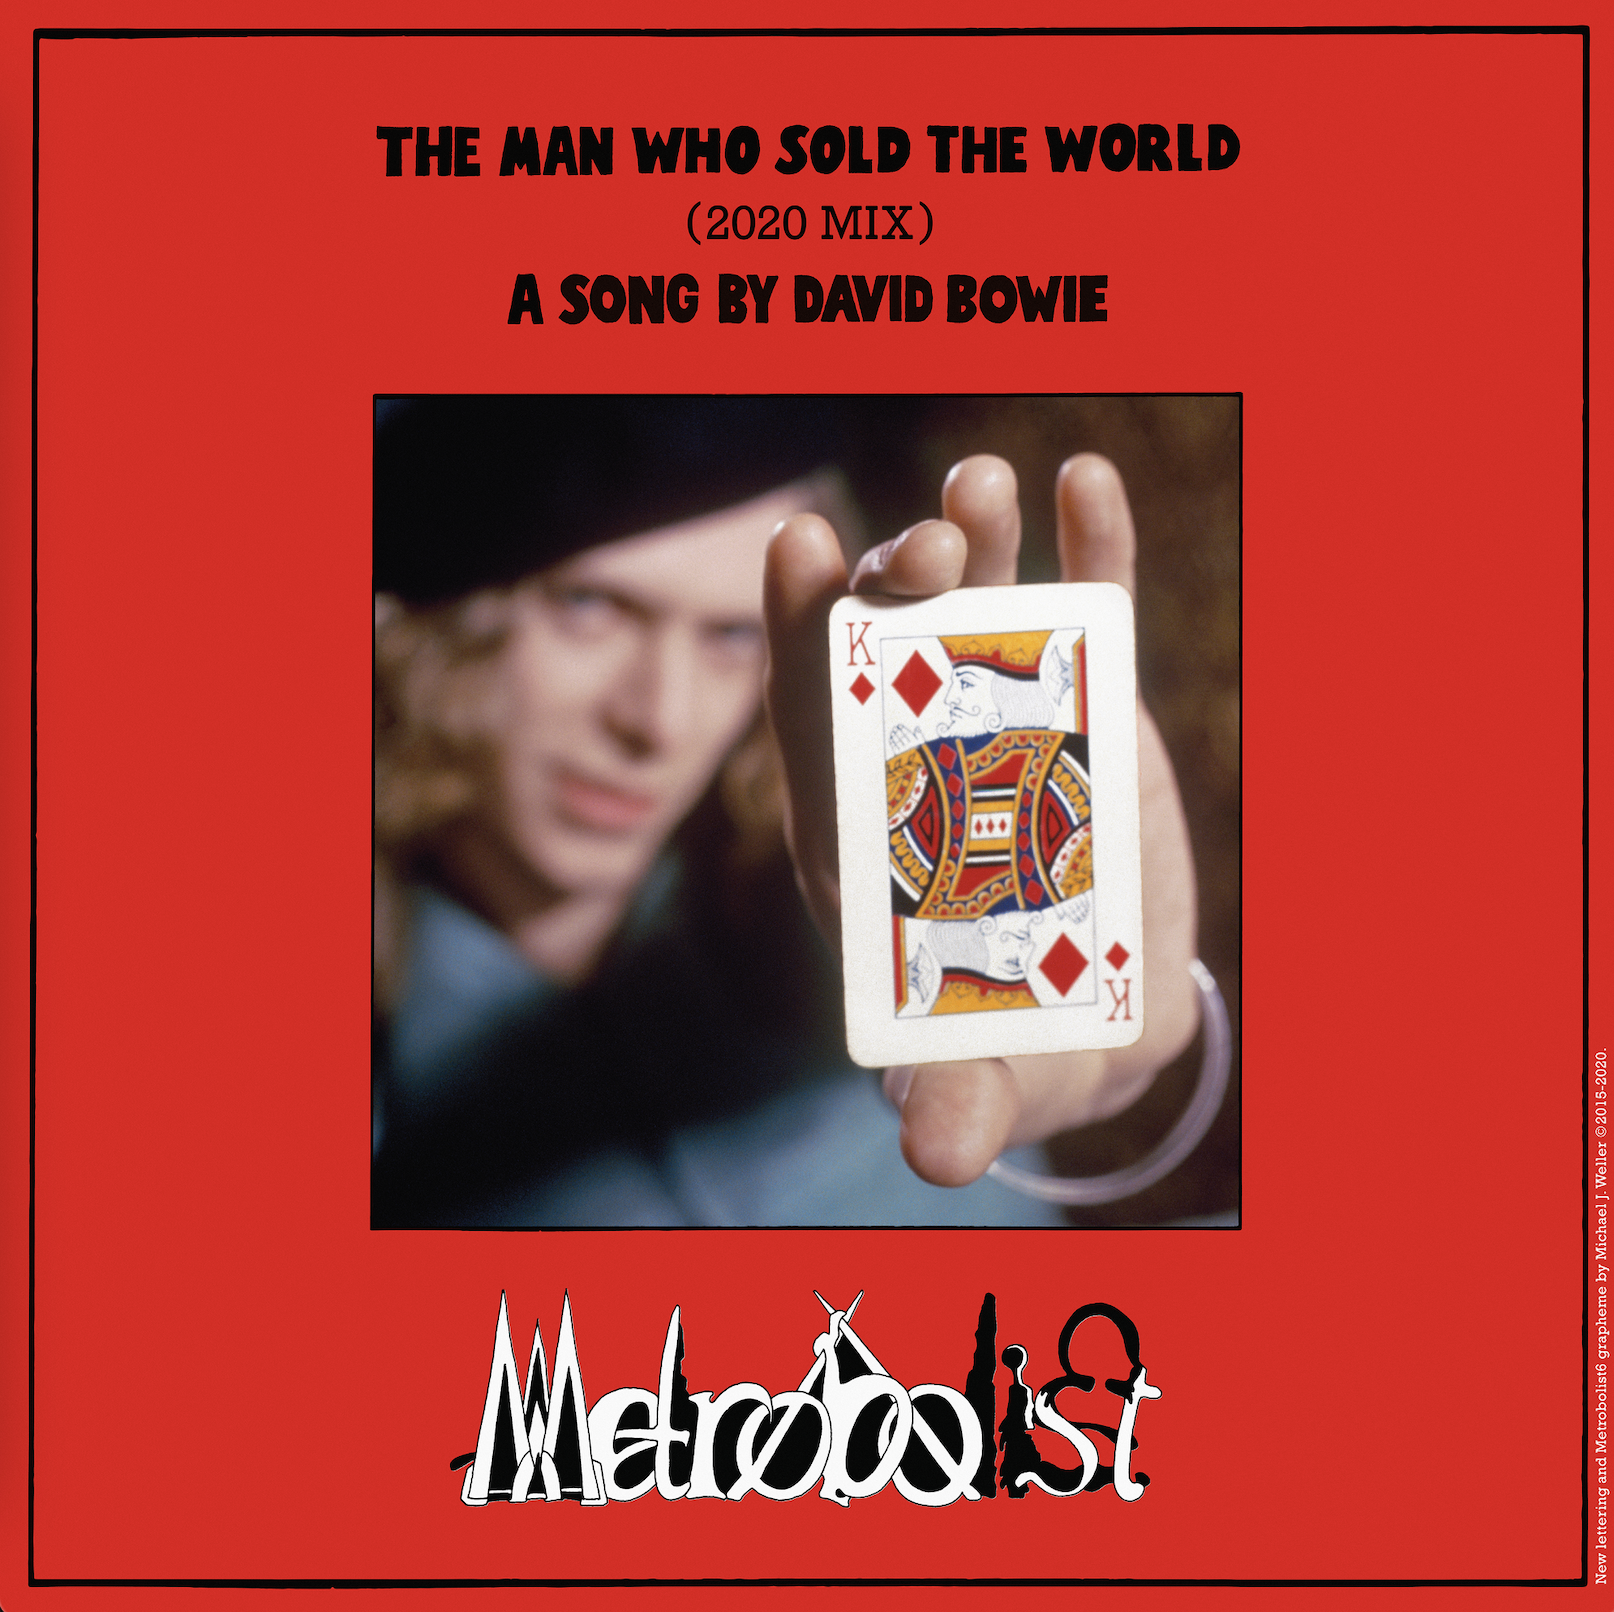 Listen to DAVID BOWIE's 'The Man Who Sold The World (2020 mix)' 1